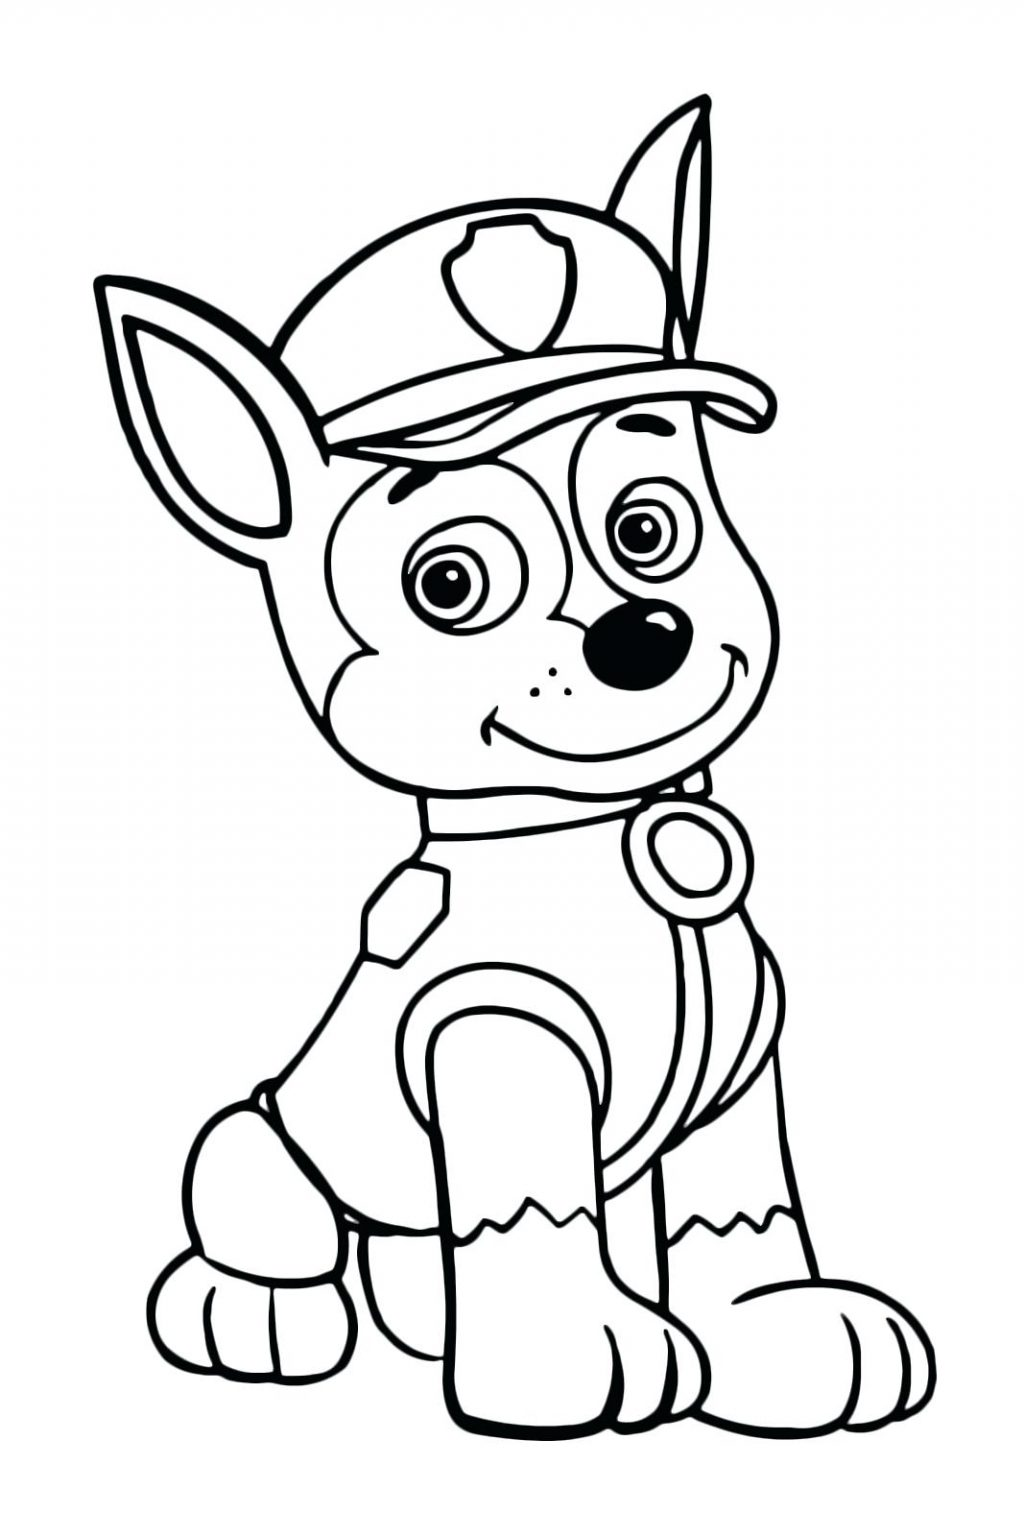 Chase Paw Patrol Coloring Pages - Coloring Home